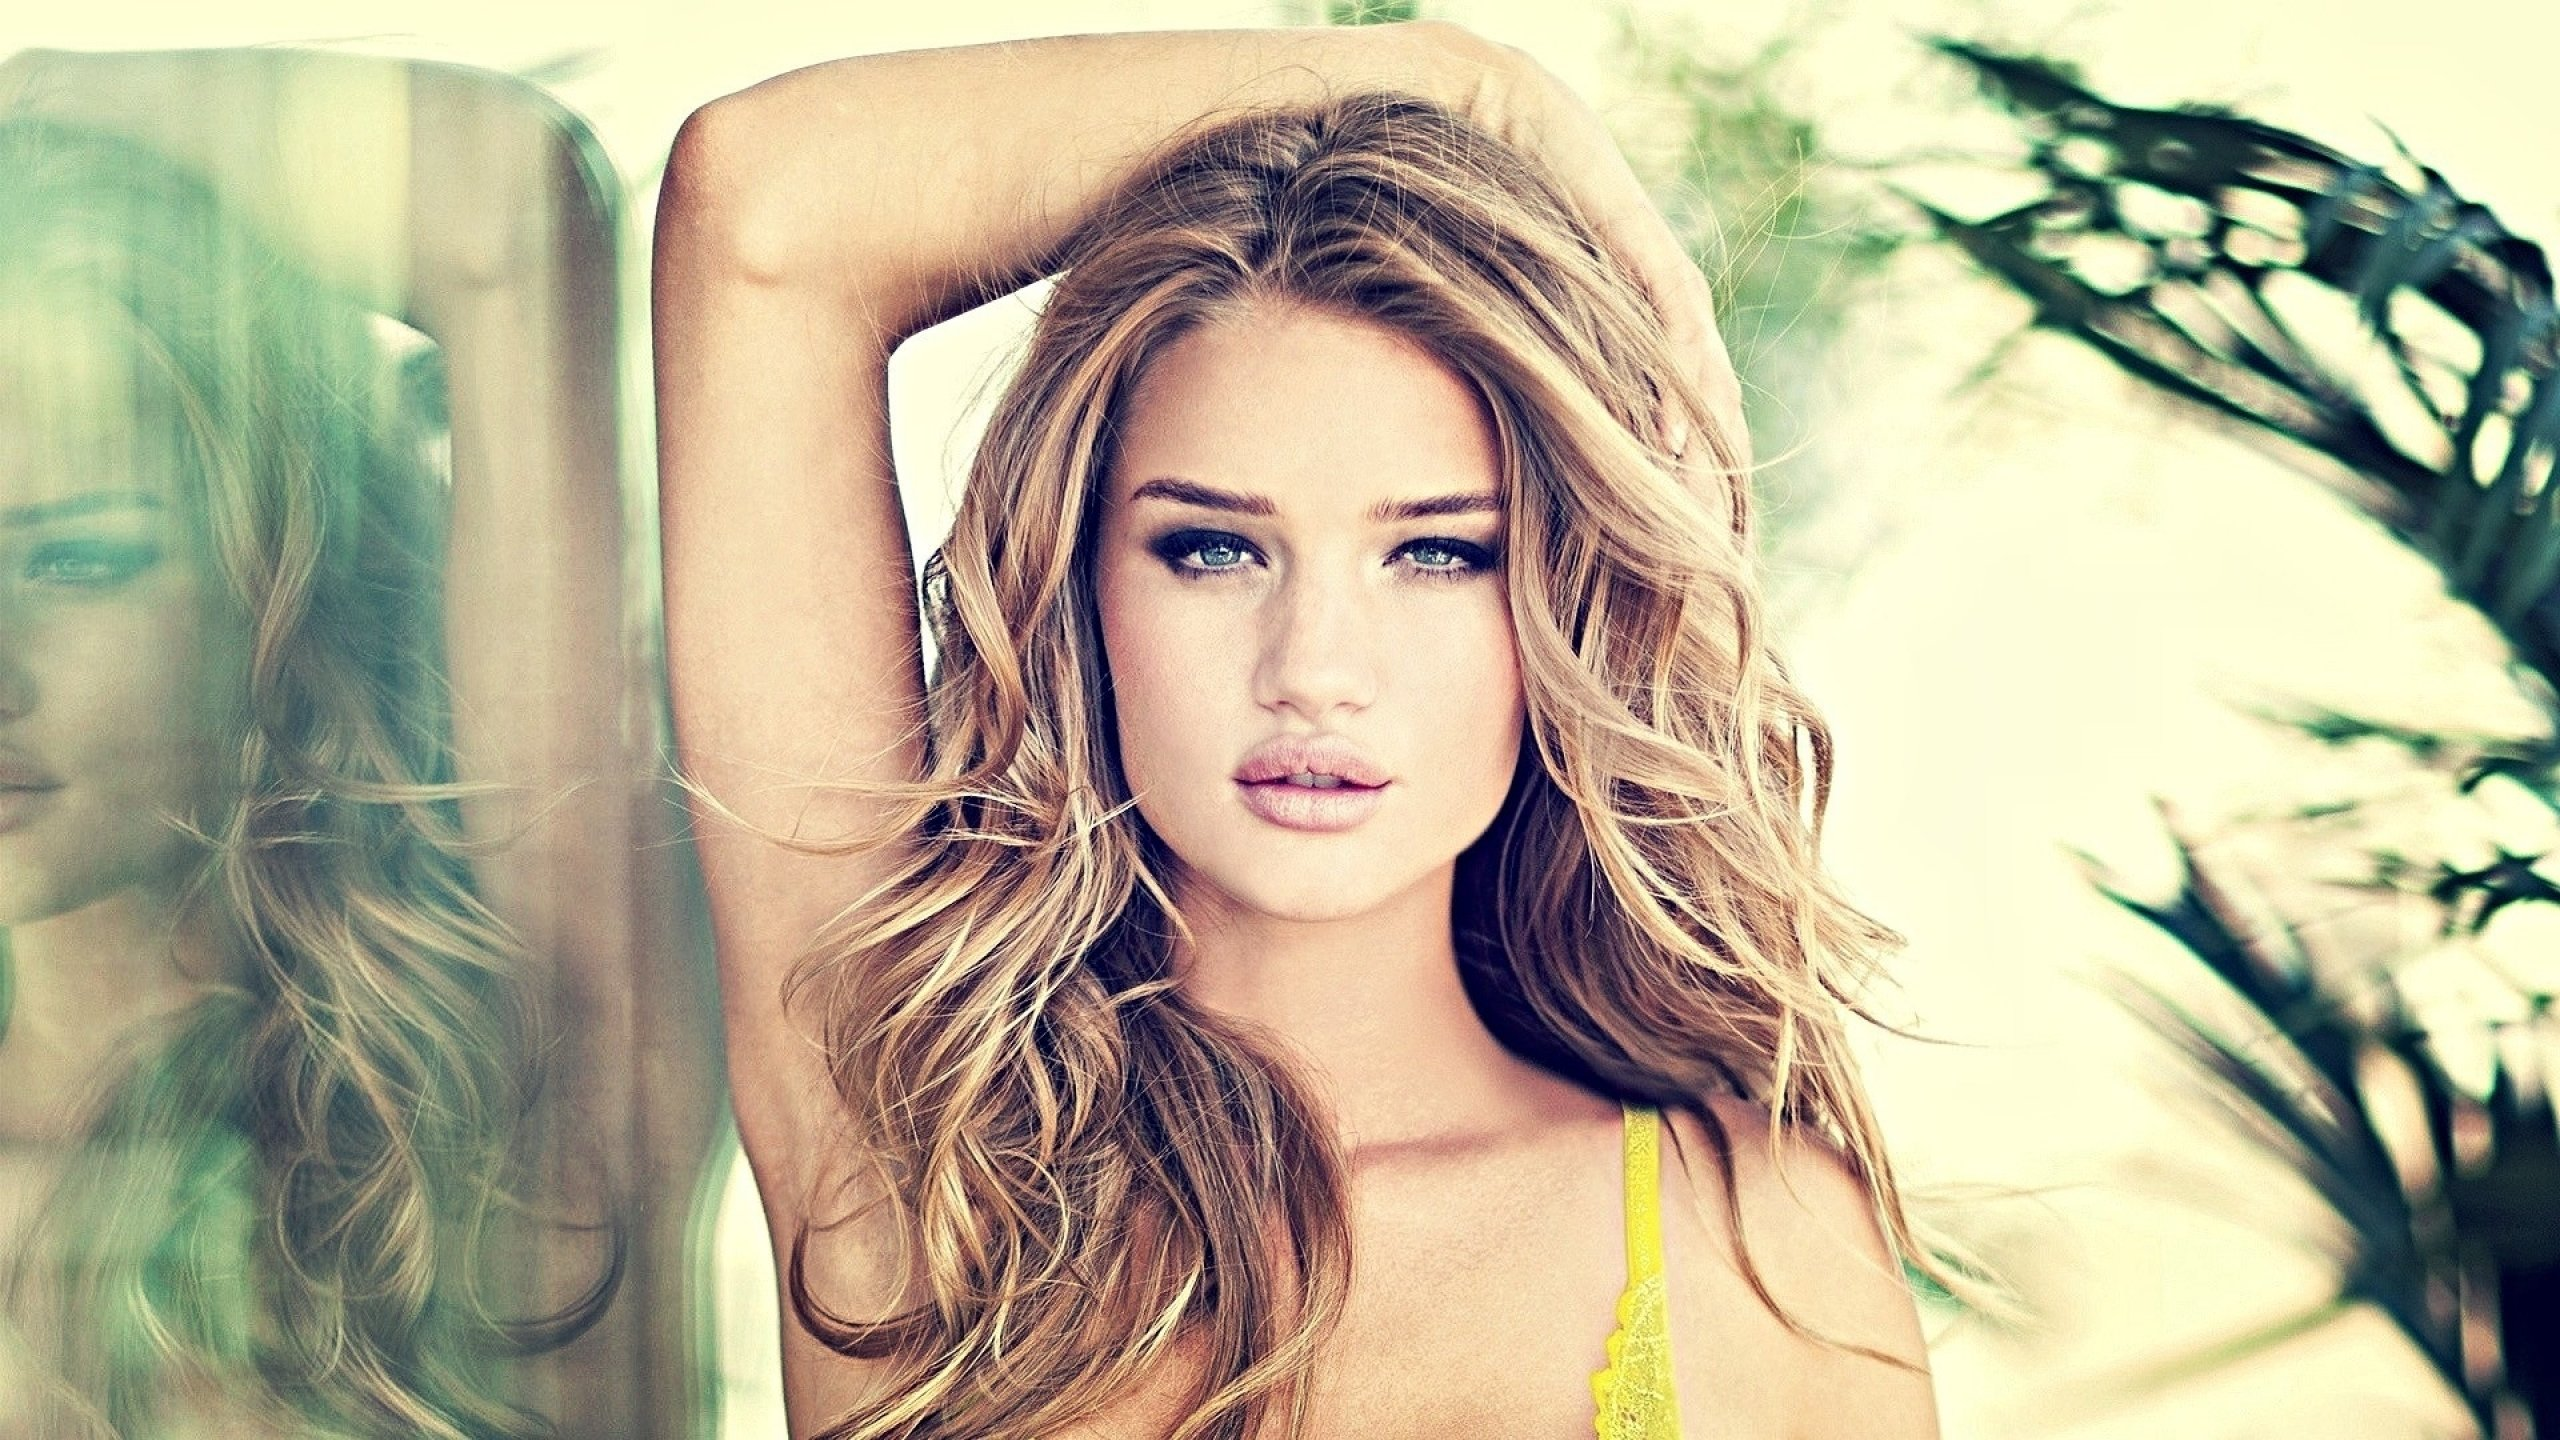 Download hd 2560x1440 Rosie Huntington-Whiteley computer wallpaper ID:445812 for free